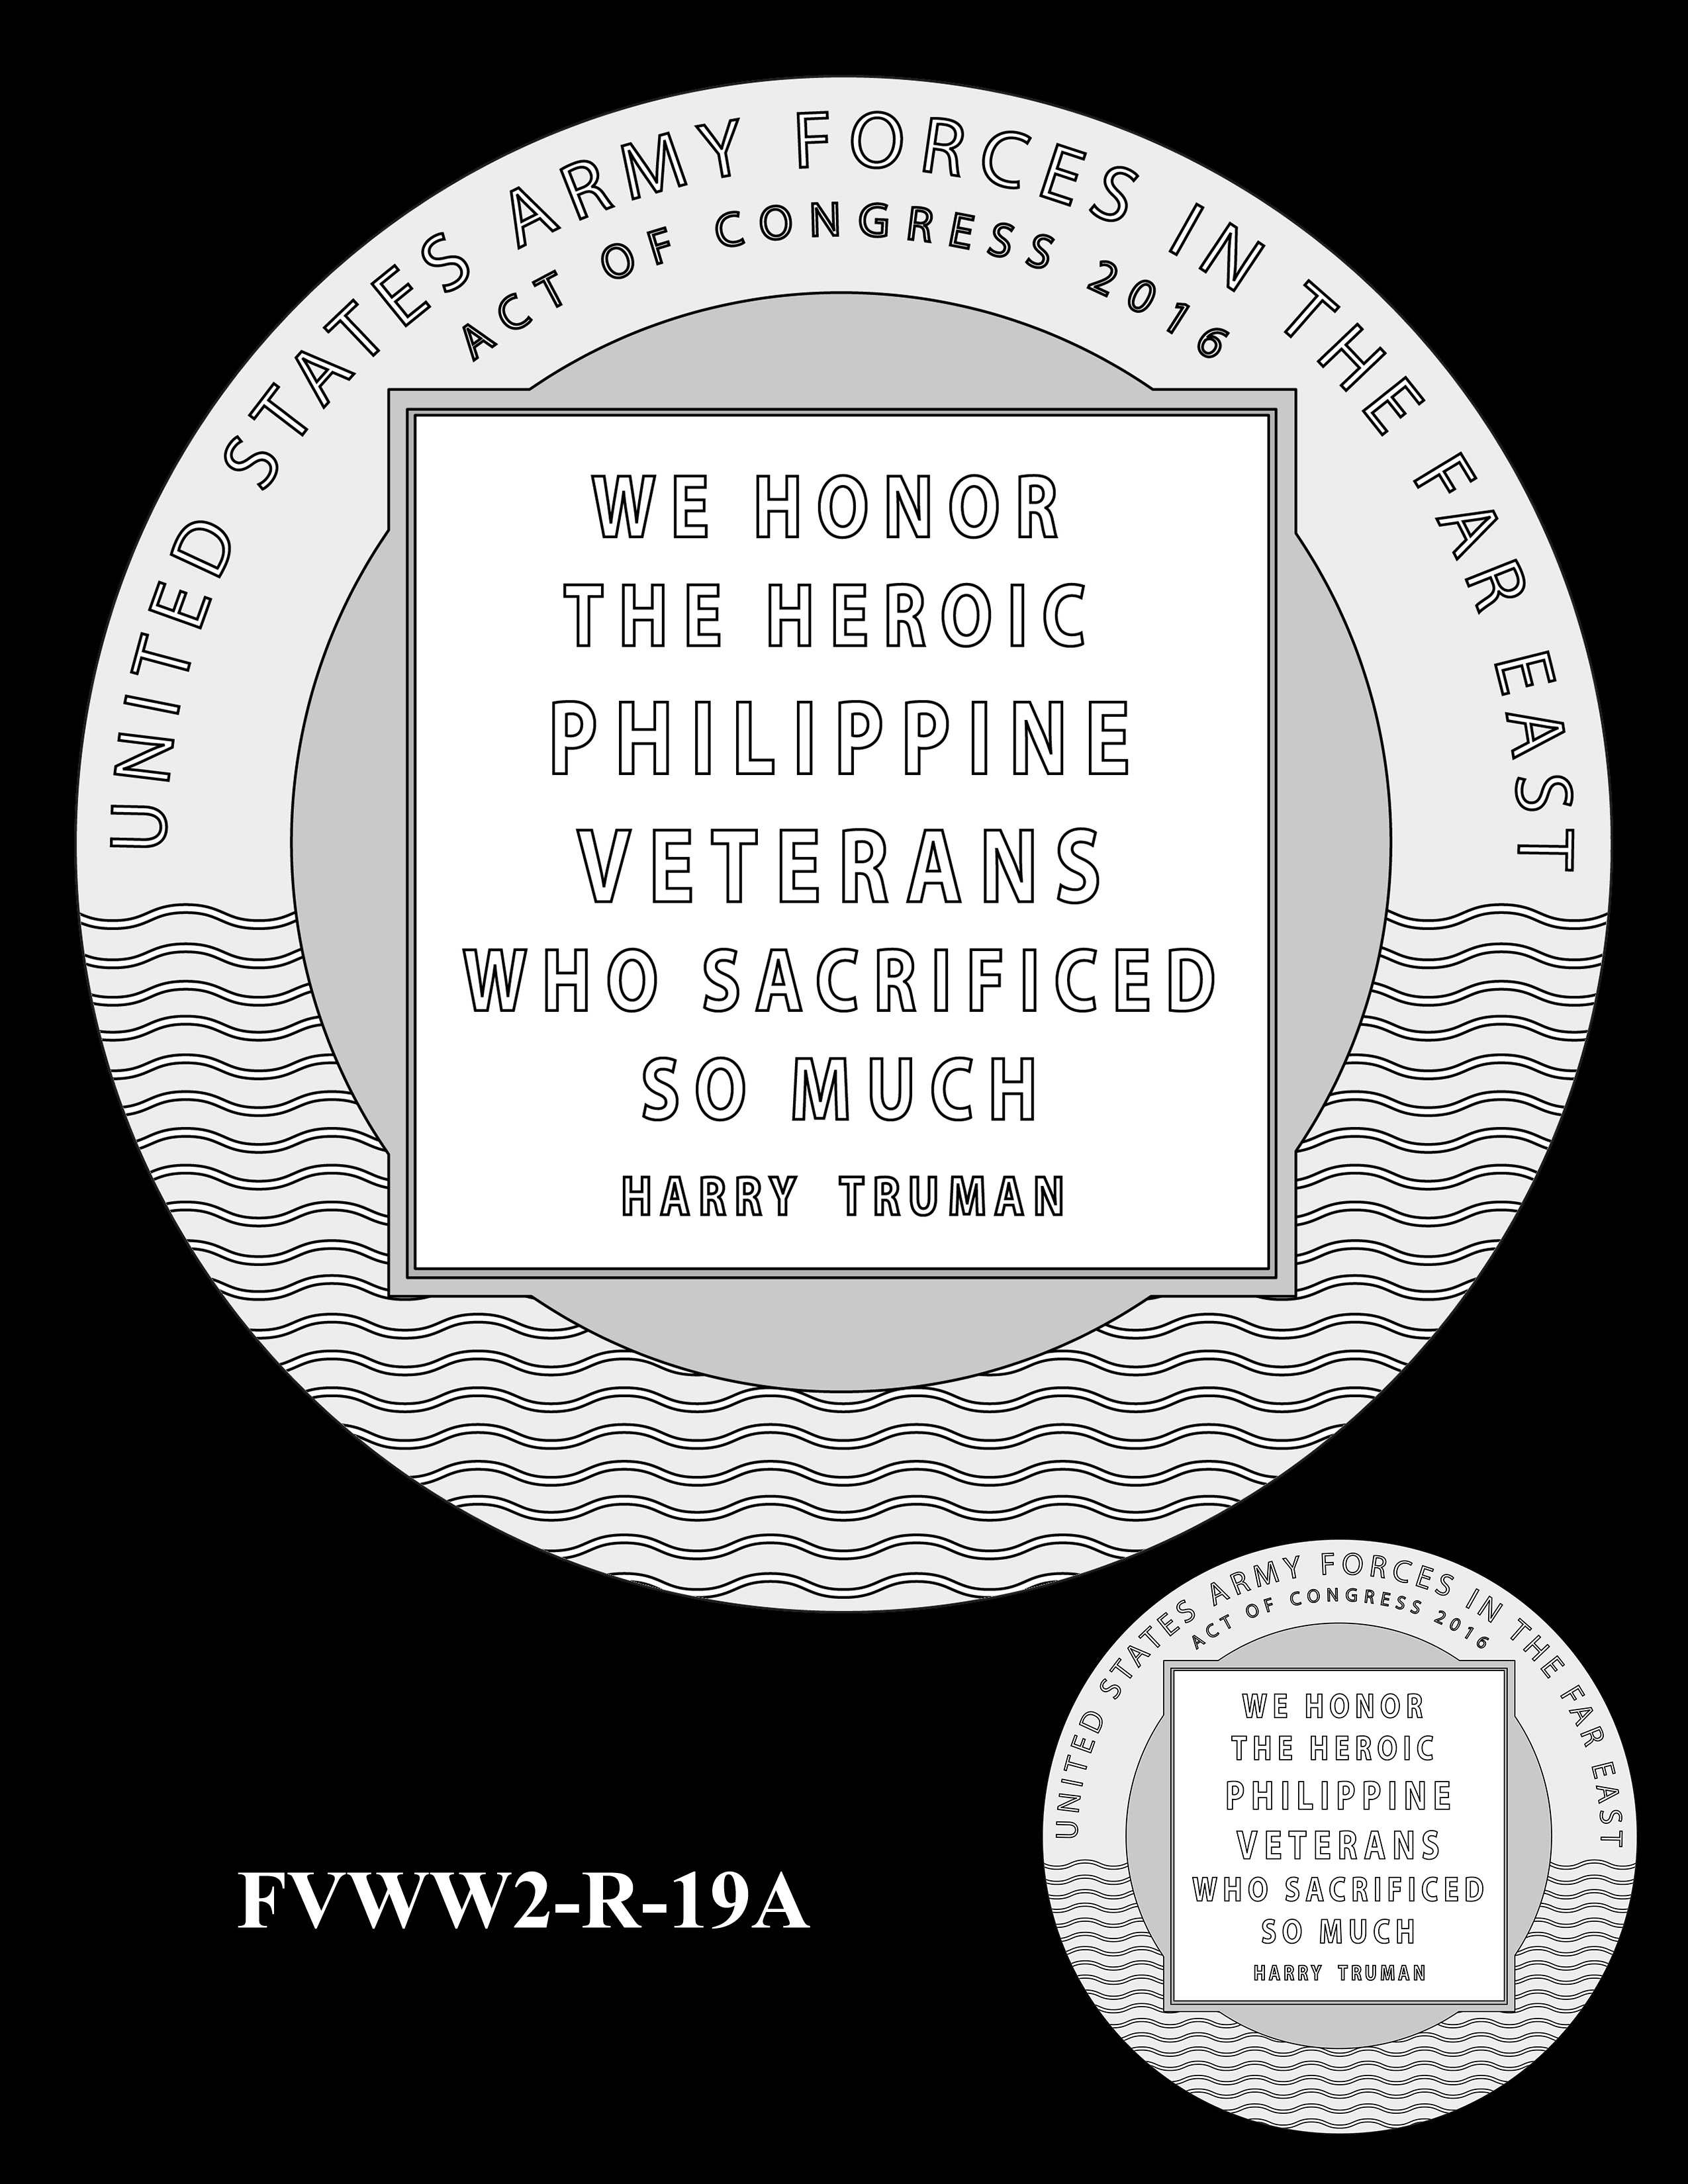 FVWW2-R-19A -- Filipino Veterans of World War II Congressional Gold Medal